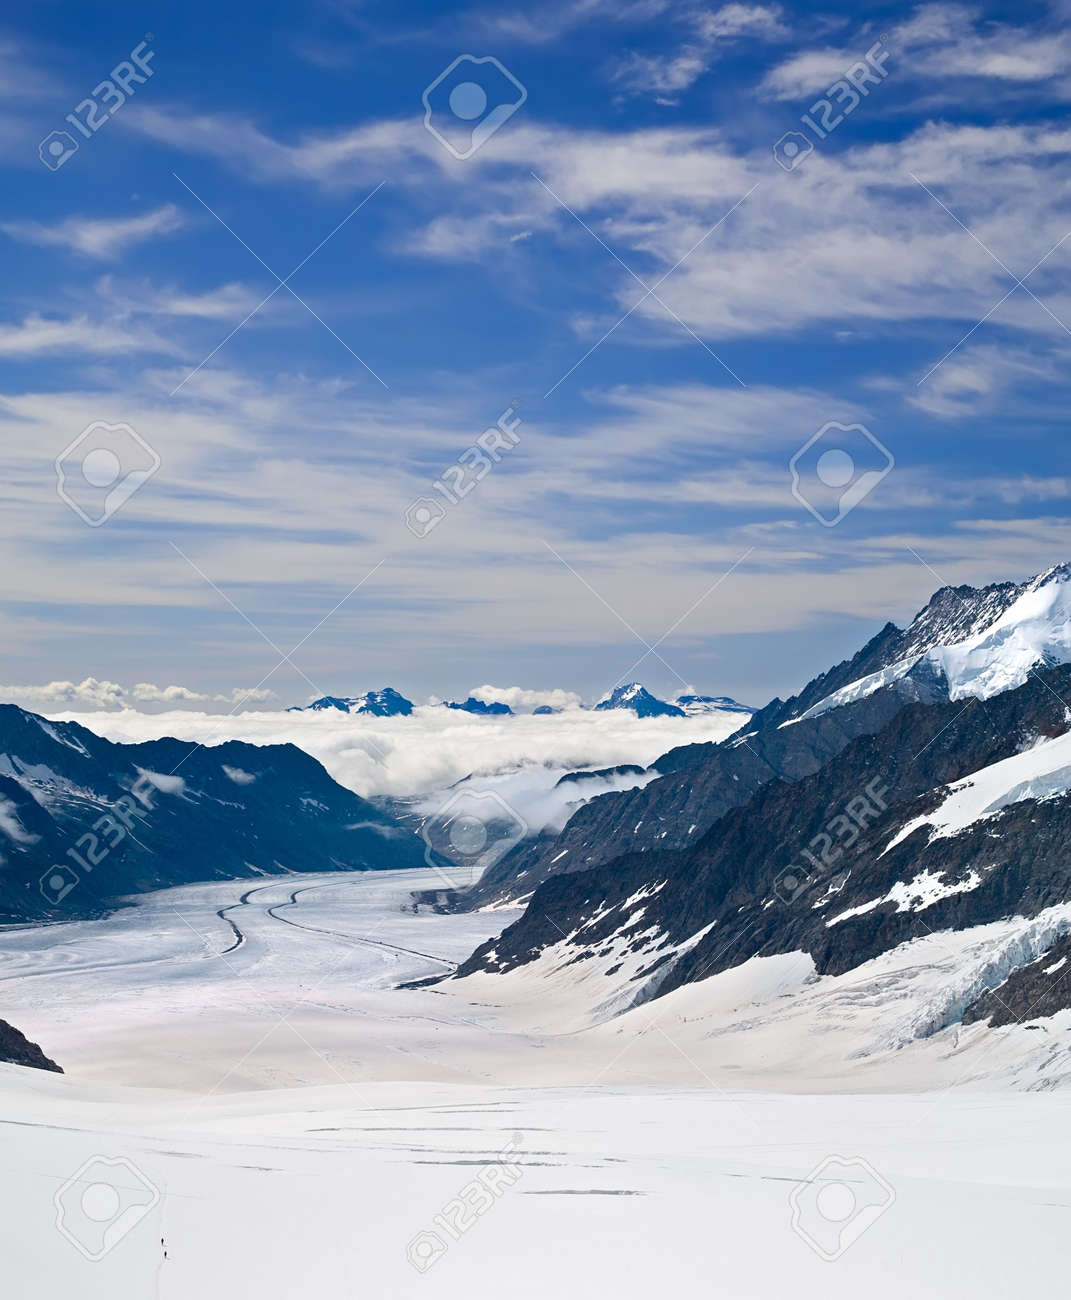 Two Hikers Walking Towards the Aletsch Glacier in the Alps, Switzerland Stock Photo - 3337494